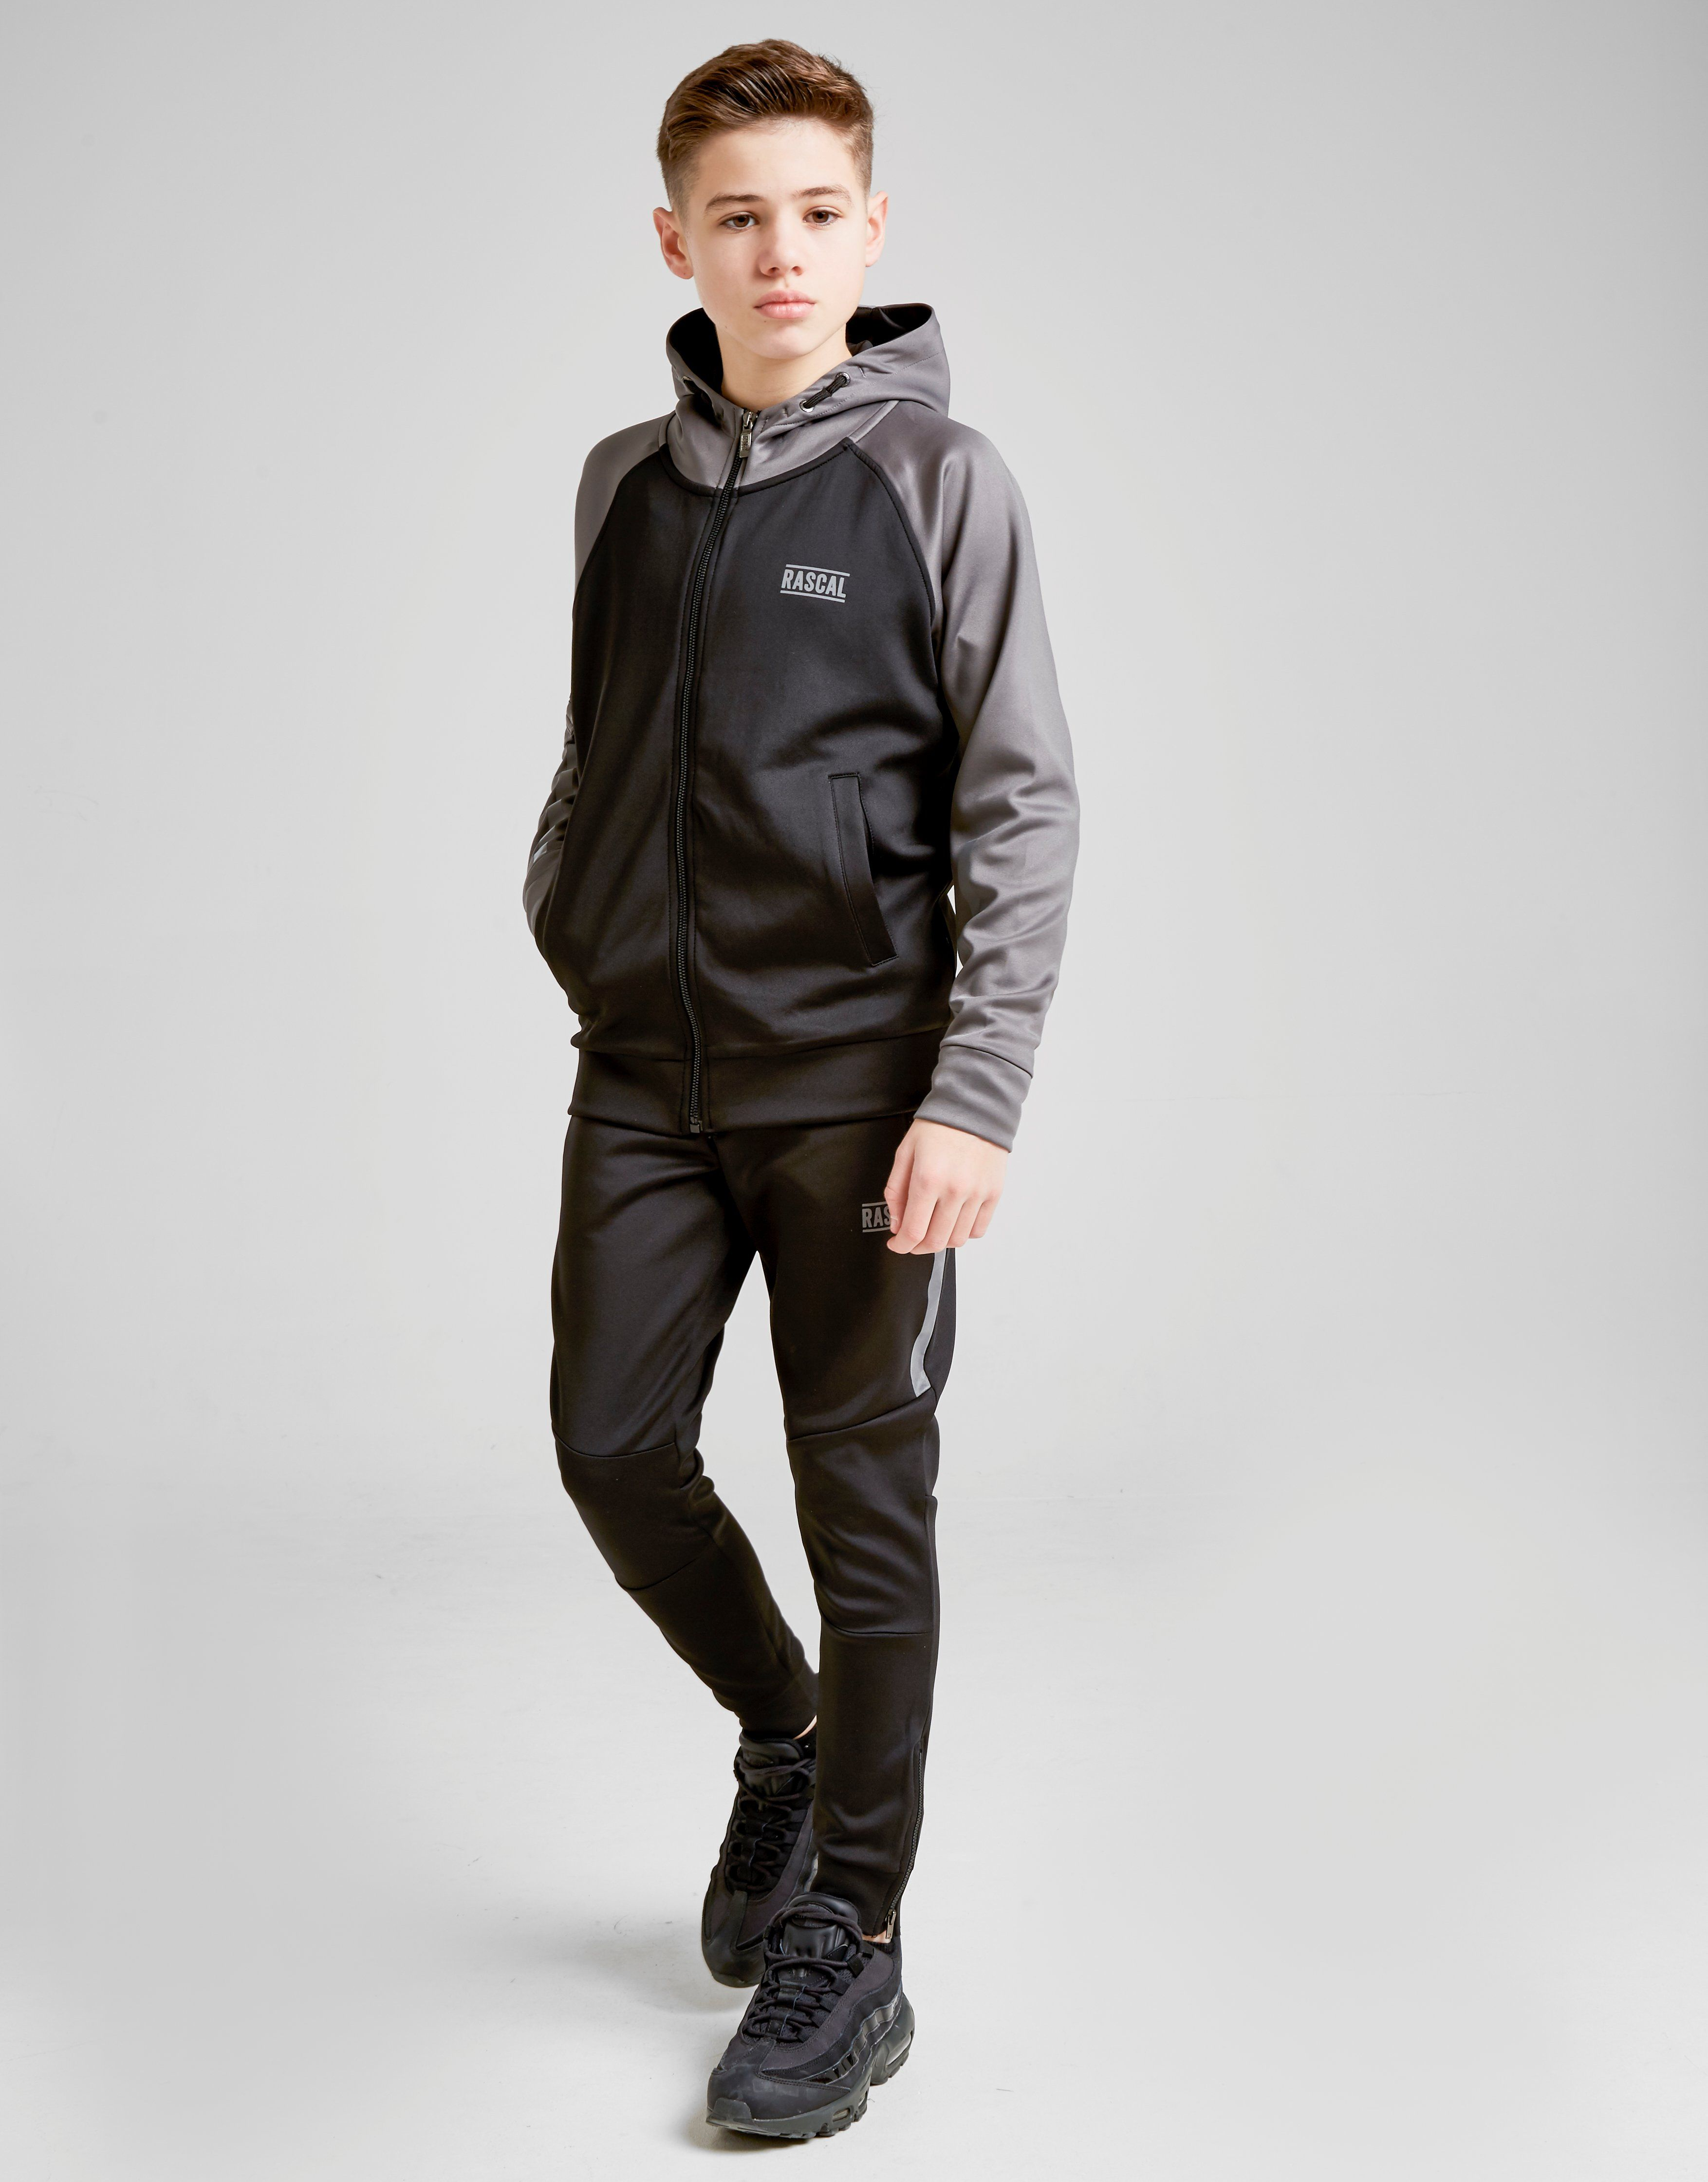 Rascal Mission Poly Colour Block Hoodie Junior